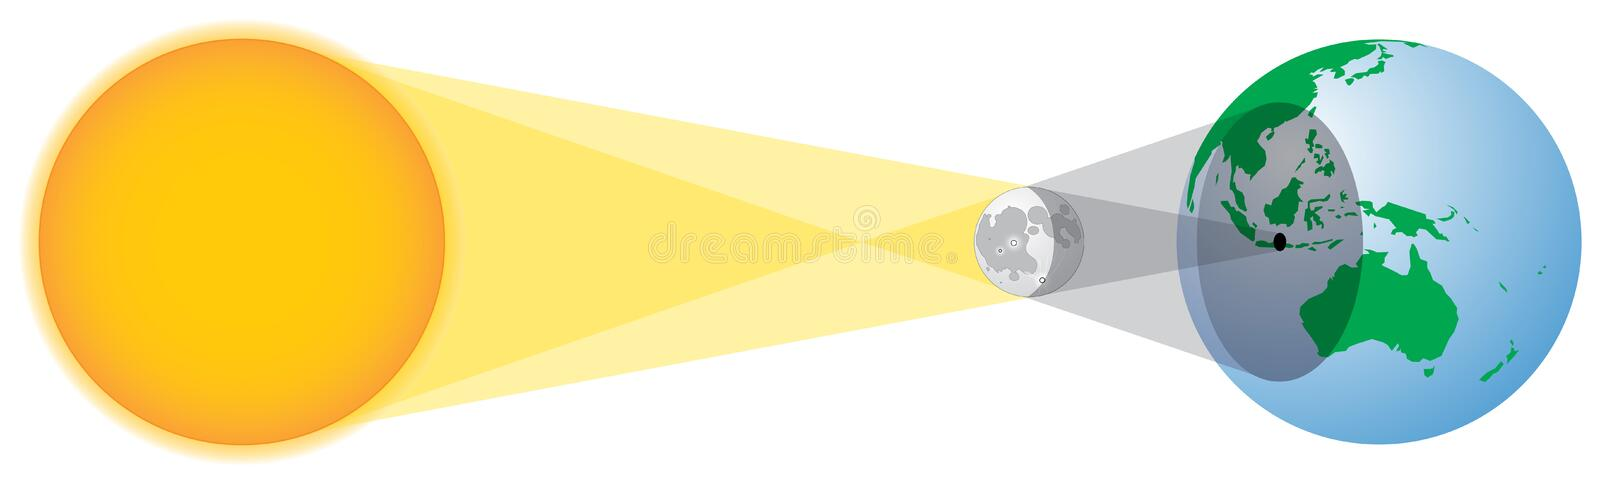 Solar eclipse geometry vector illustration